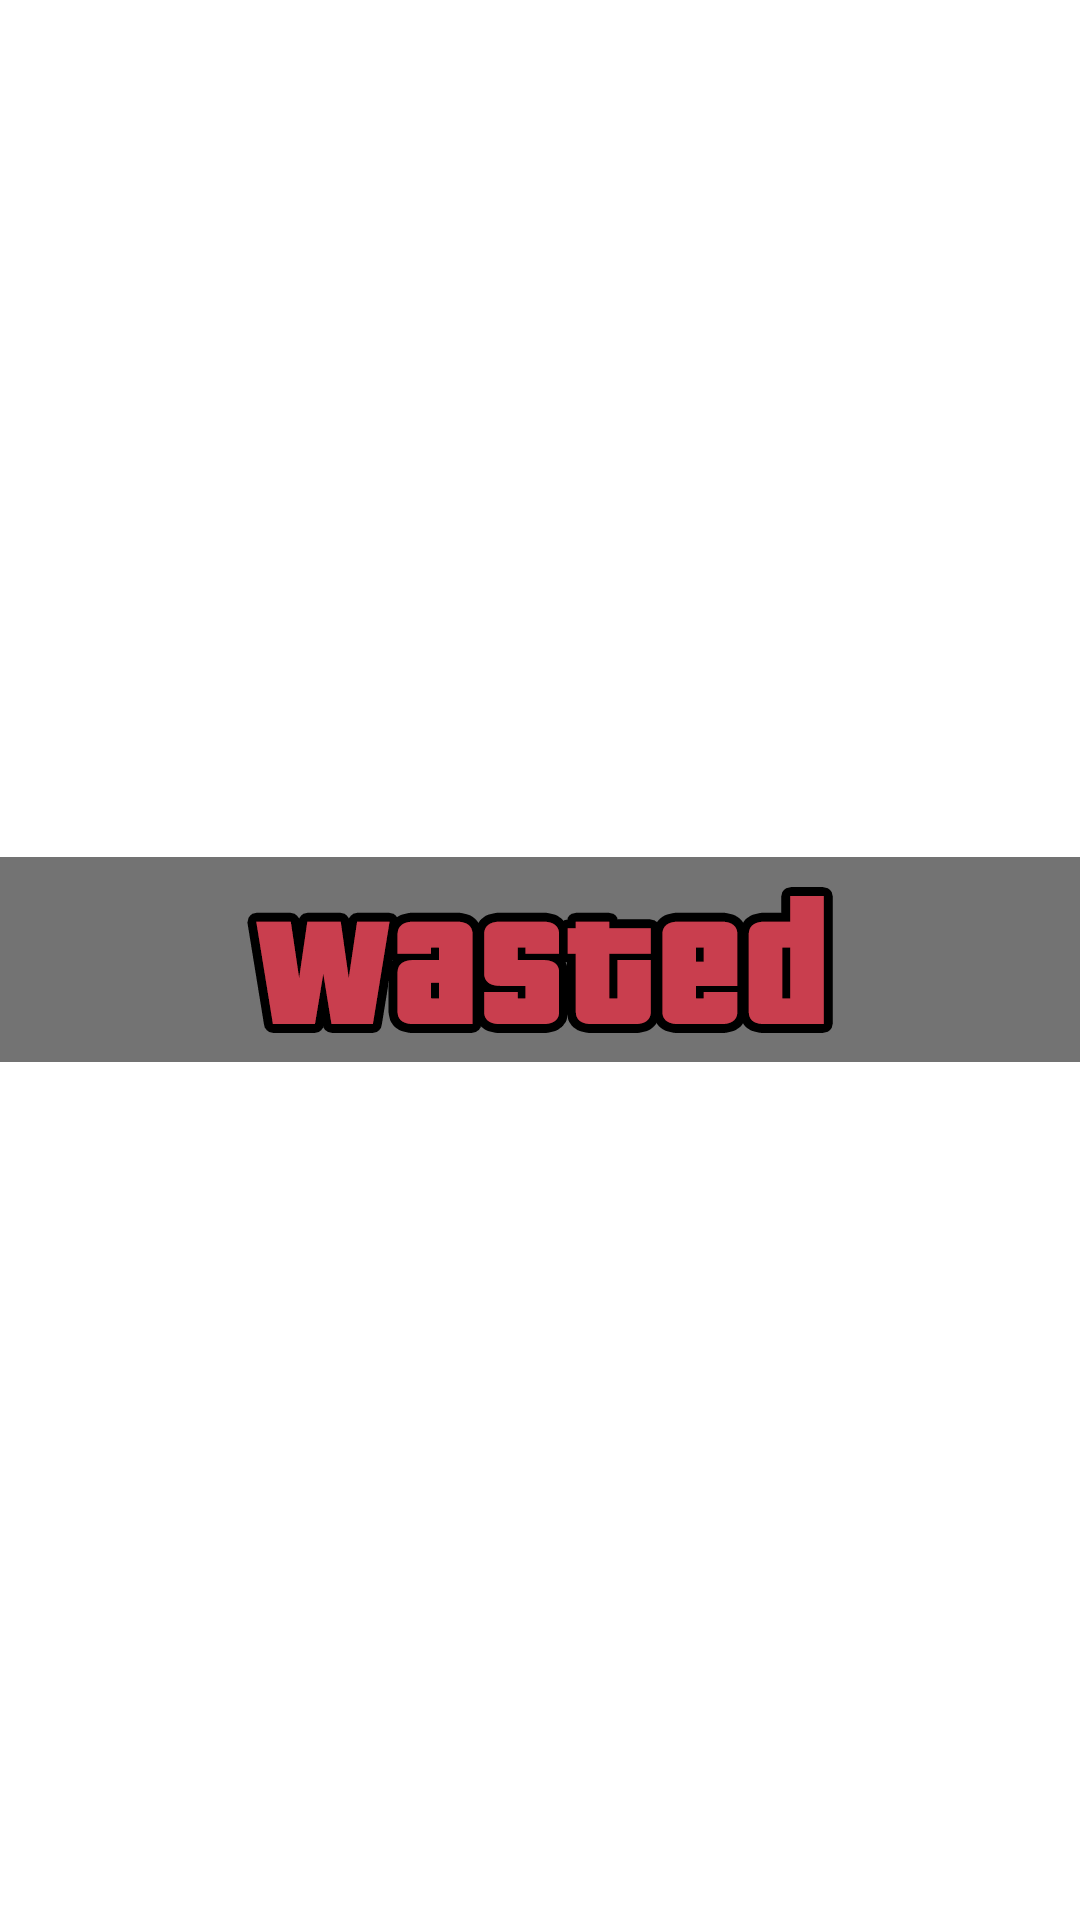 Gta 5 wasted png. Snapprefs filtergta